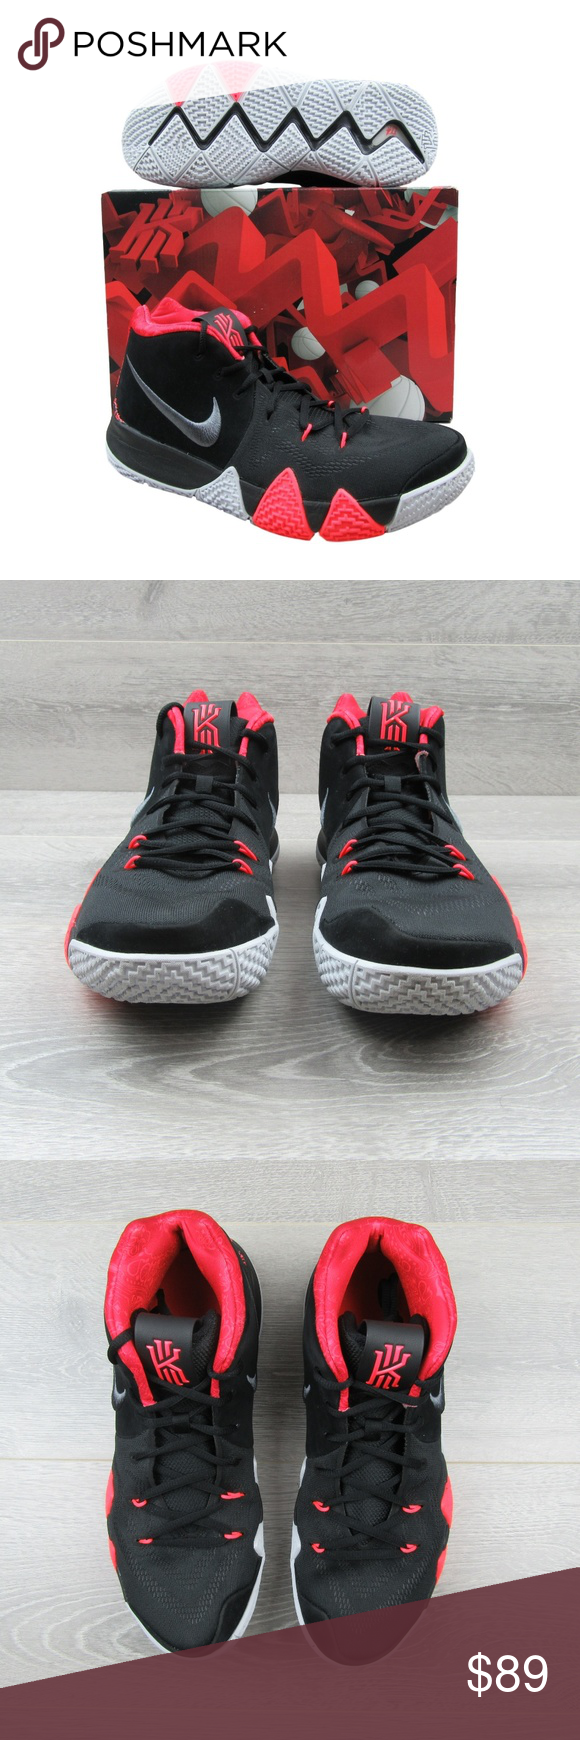 ca484546888f Nike Kyrie 4 Black Crimson Basketball Shoes 11.5 PRICE IS FIRM - NO OFFERS  - Nike